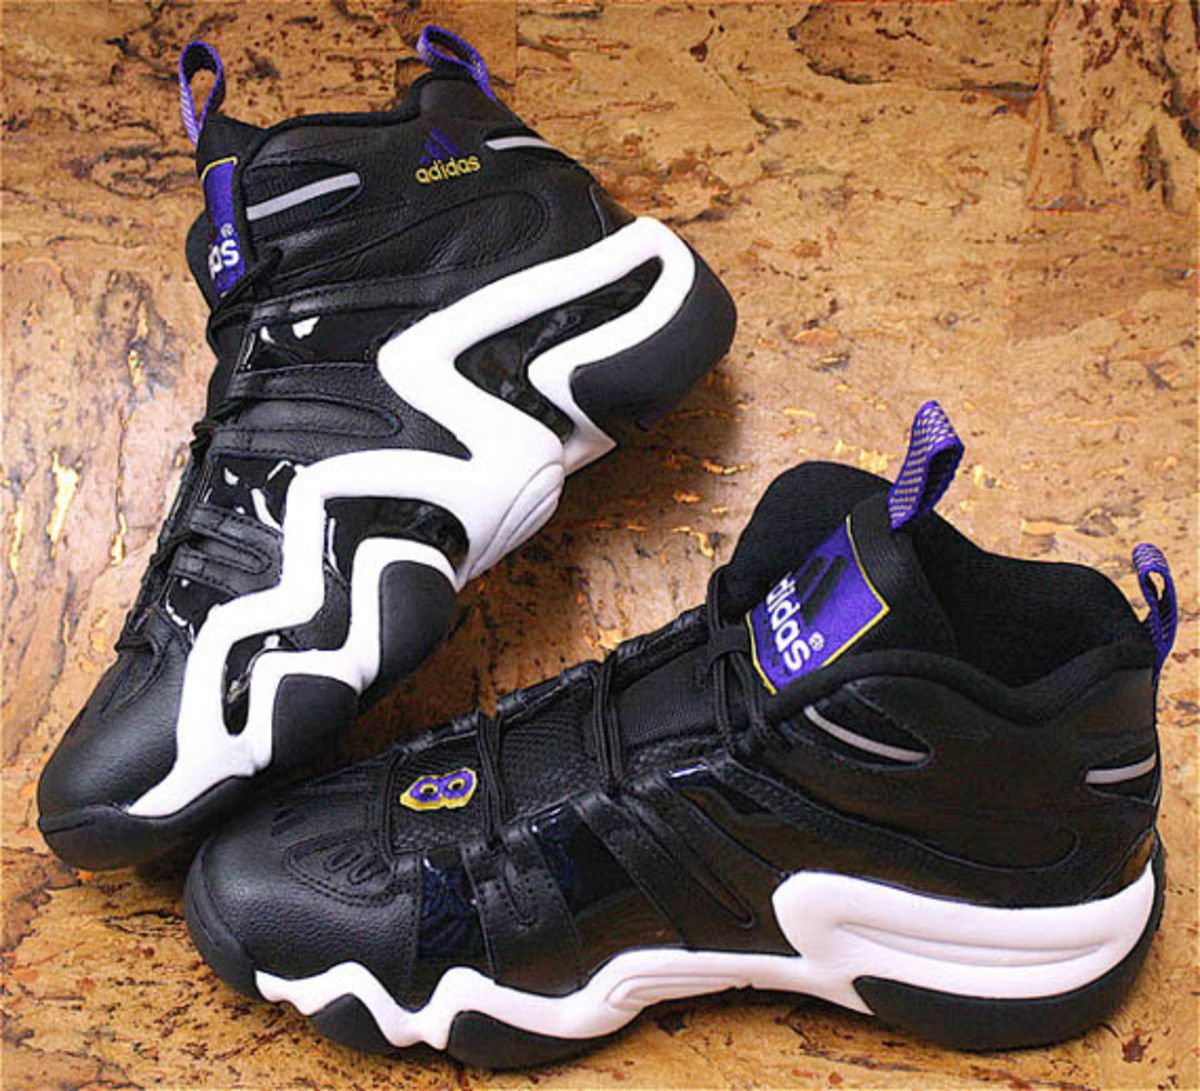 Fraude Incesante Entretener  adidas Crazy 8 - Kobe Bryant 1998 NBA All-Star Game | Kobe bryant, Adidas  crazy, Kobe